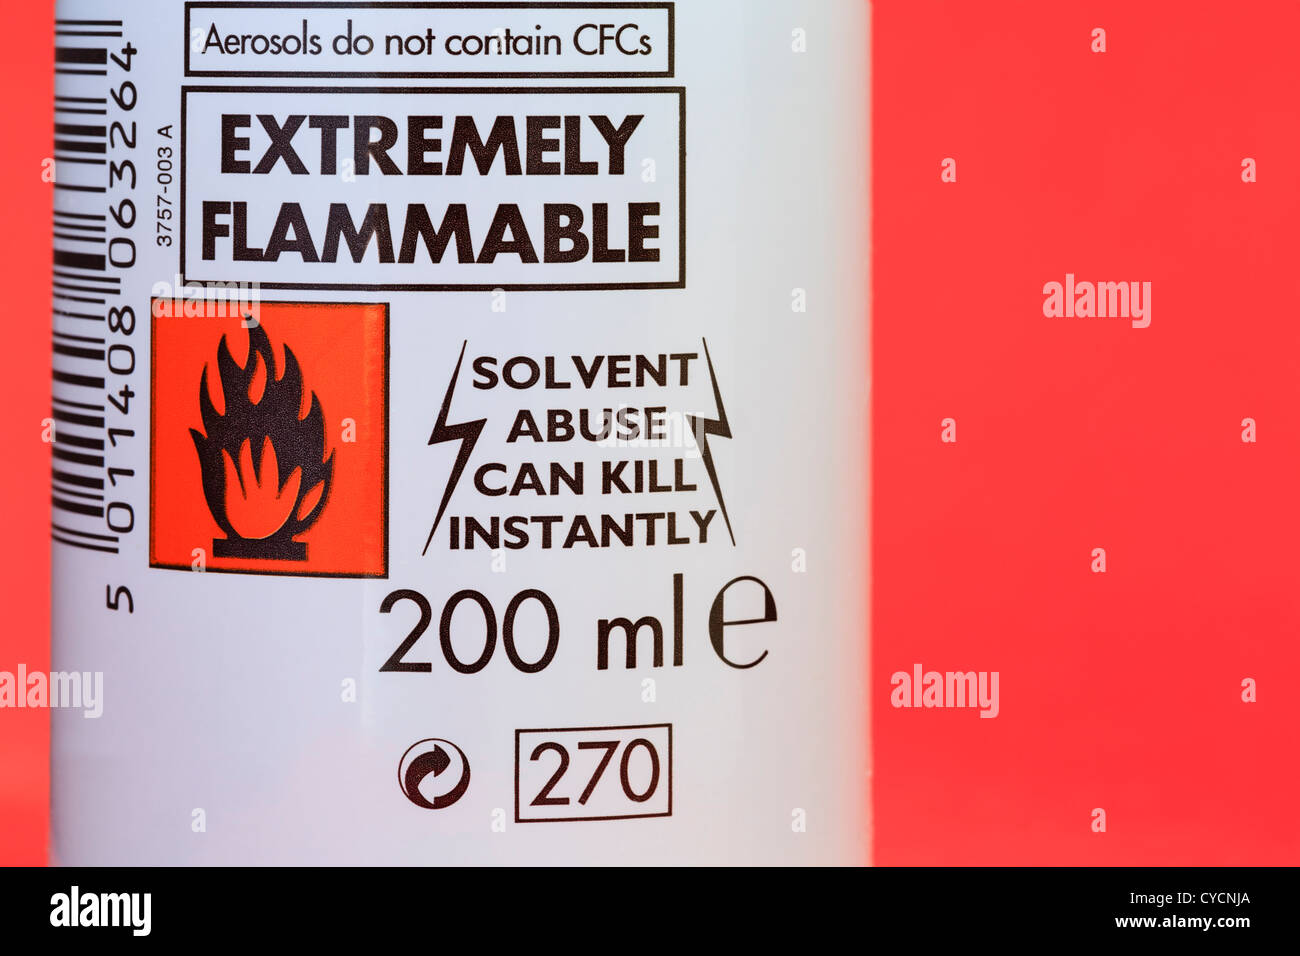 Extremely flammable symbol and solvent abuse warning label on a can of hair mousse - Stock Image